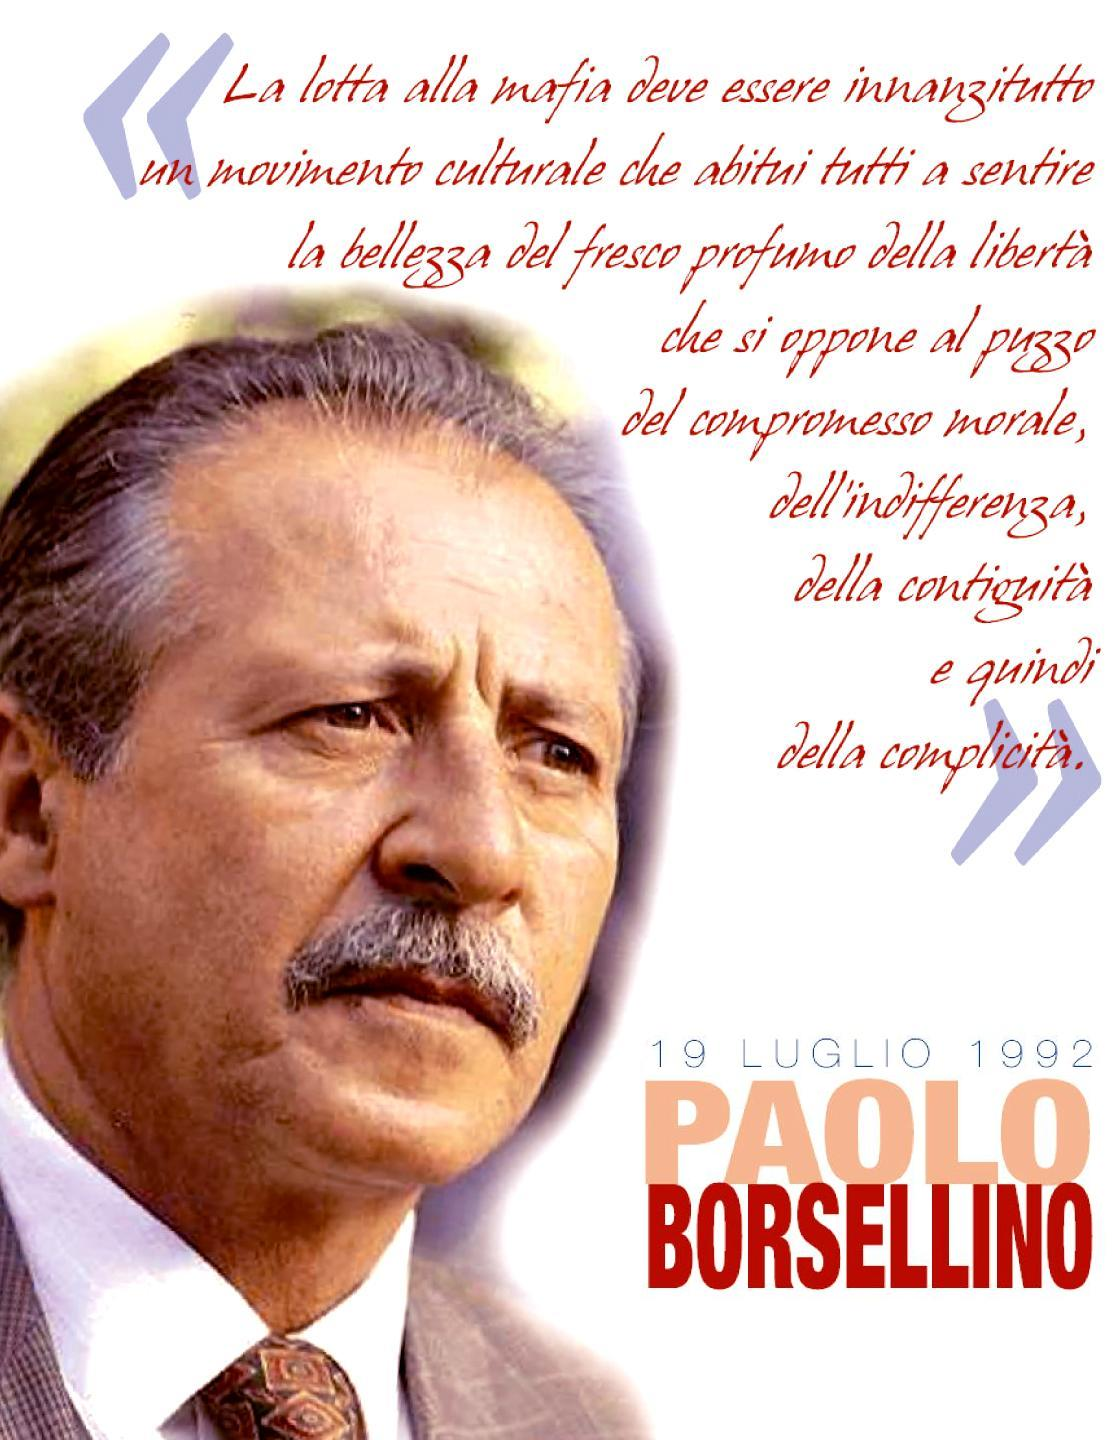 paolo borsellino - photo #8